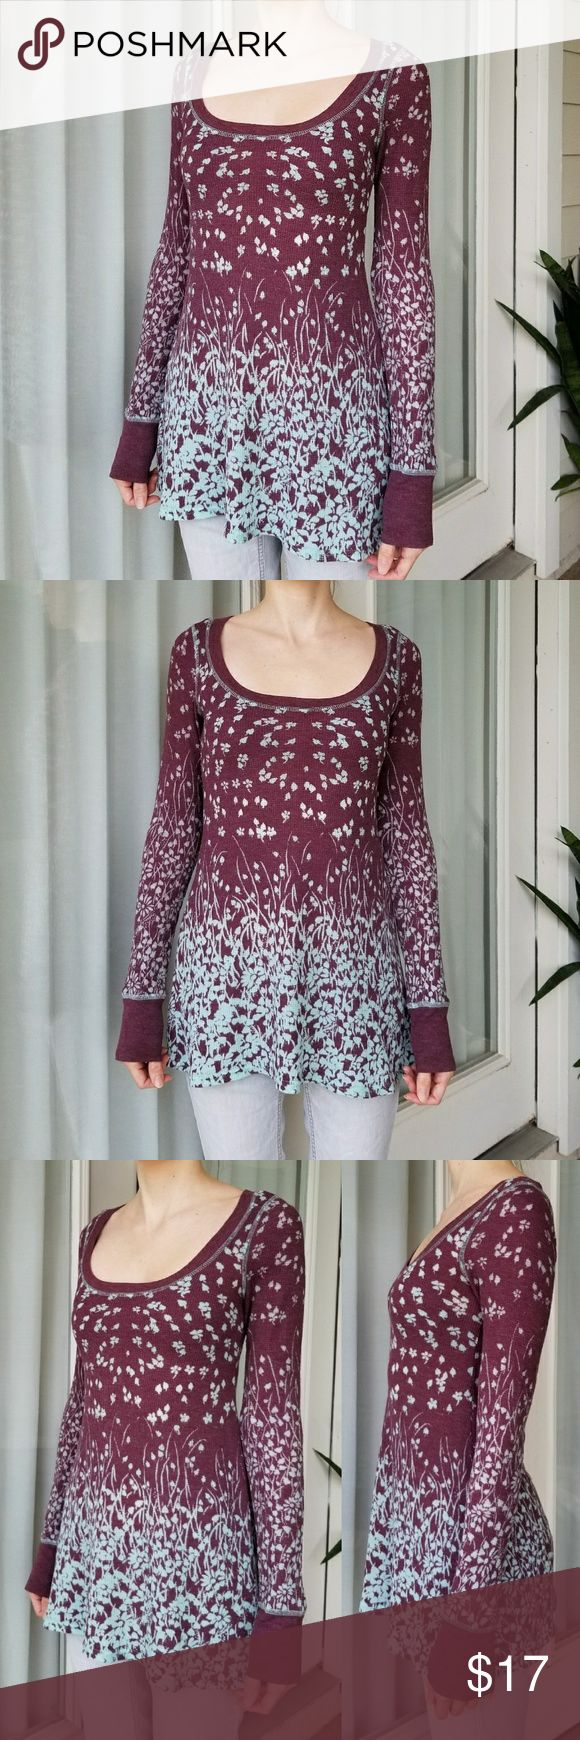 Free People Floral Long Sleeve Top Free People top. Size small. Floral pattern creates a blue and purple ombre effect. Long sleeves. Free People Tops